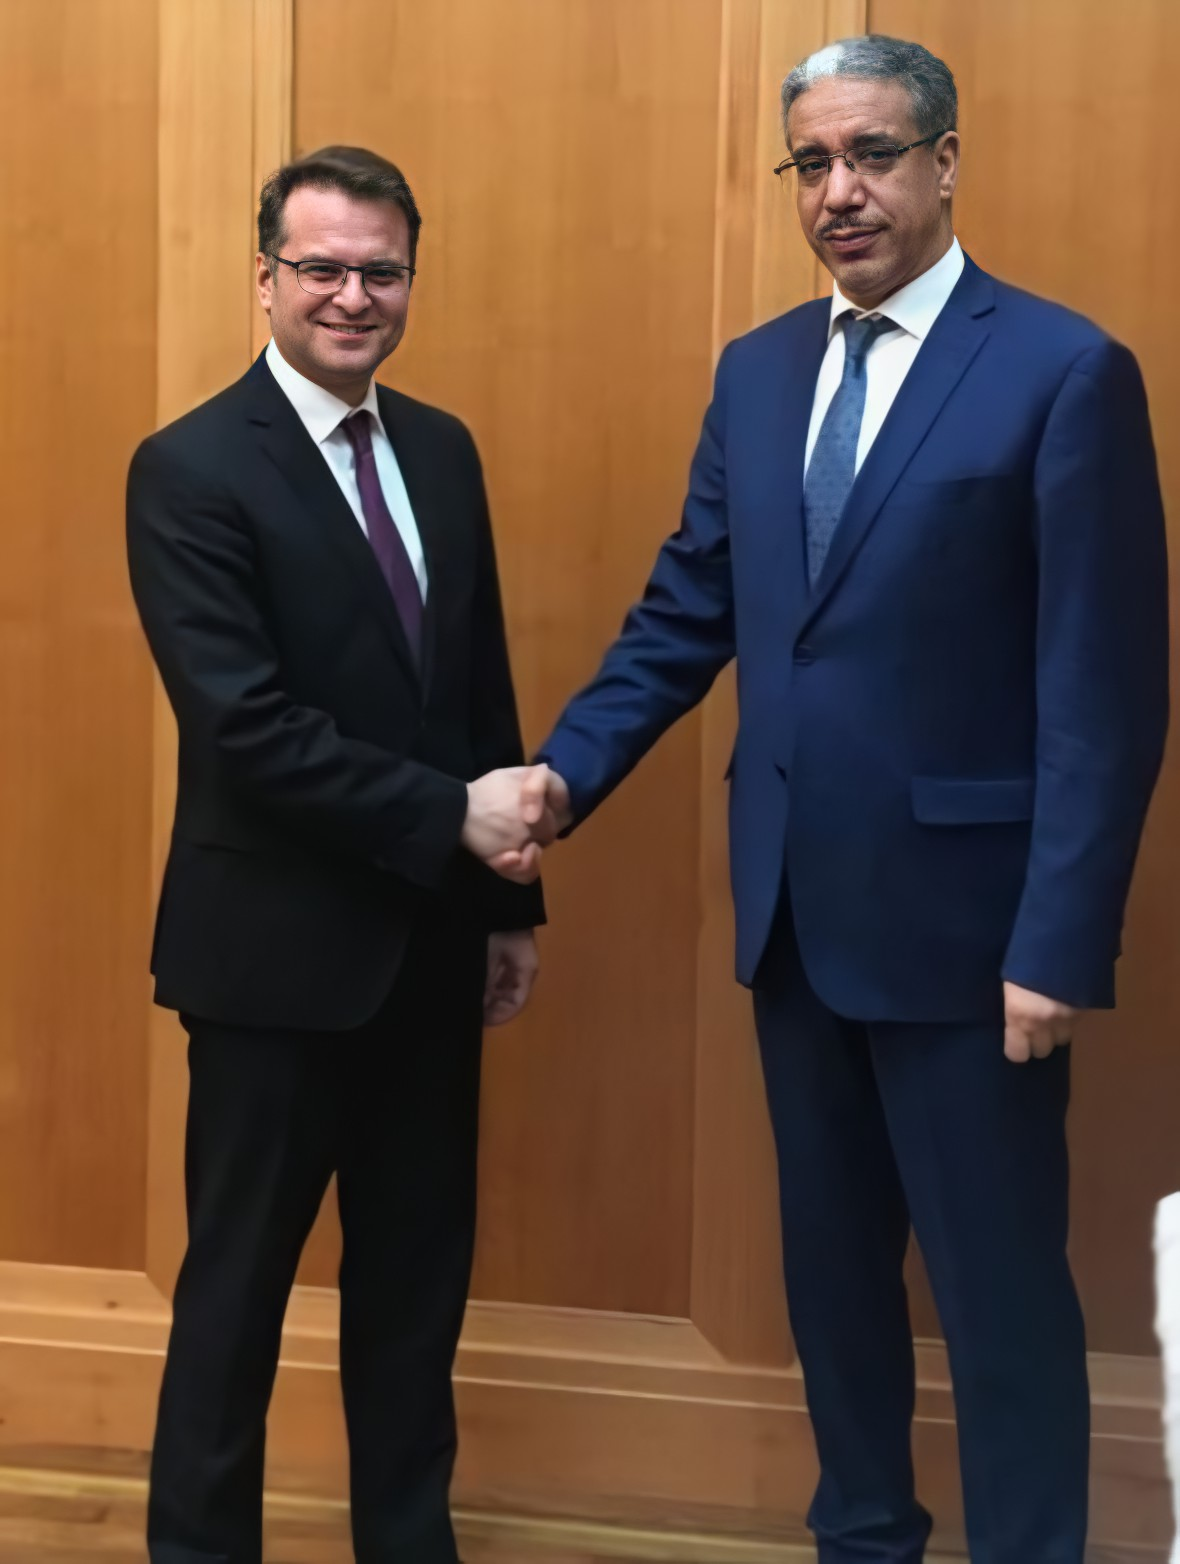 HEM Aziz RABBAH Minister of Energy, Mines and Environment (MEME) bilaterally with Andreas FEICHT State Secretary at the Ministry of Economic Affairs and Energy (BMWi) on the fringes of the BETD 2019.